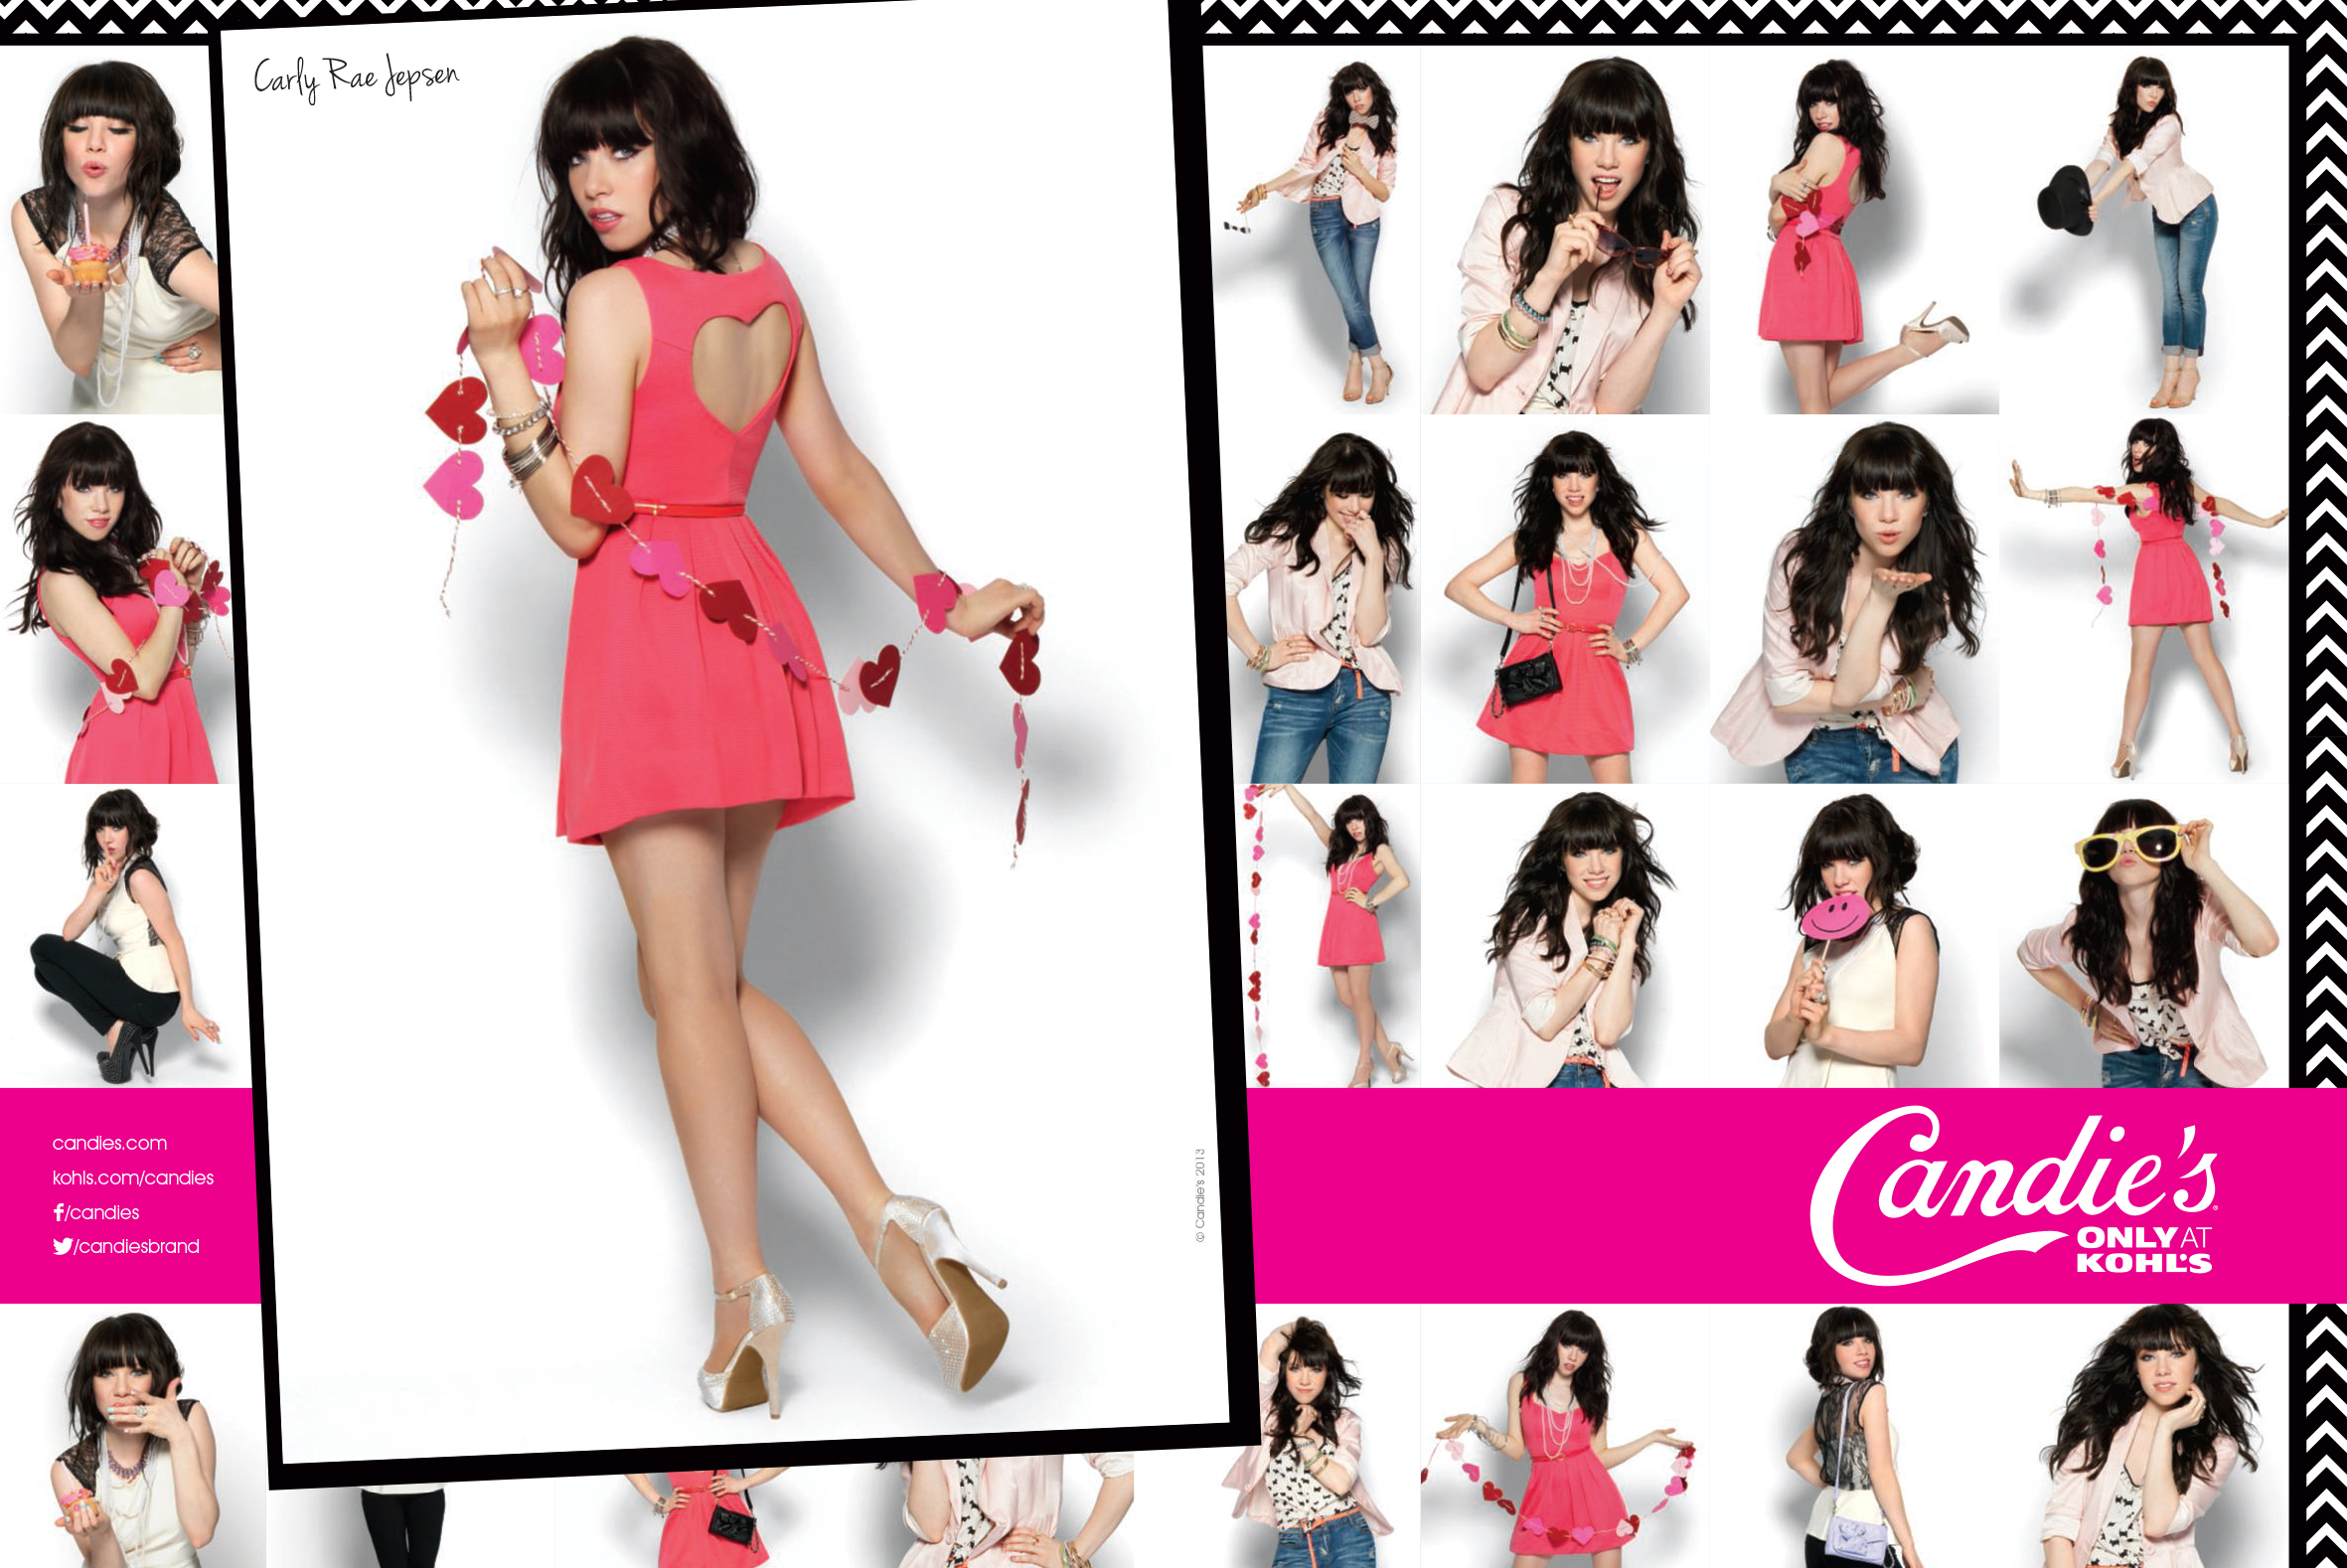 35e50d9b7 Candie's Debuts Spring Marketing Campaign Starring Grammy Nominated,  Multi-Platinum Artist Carly Rae Jepsen